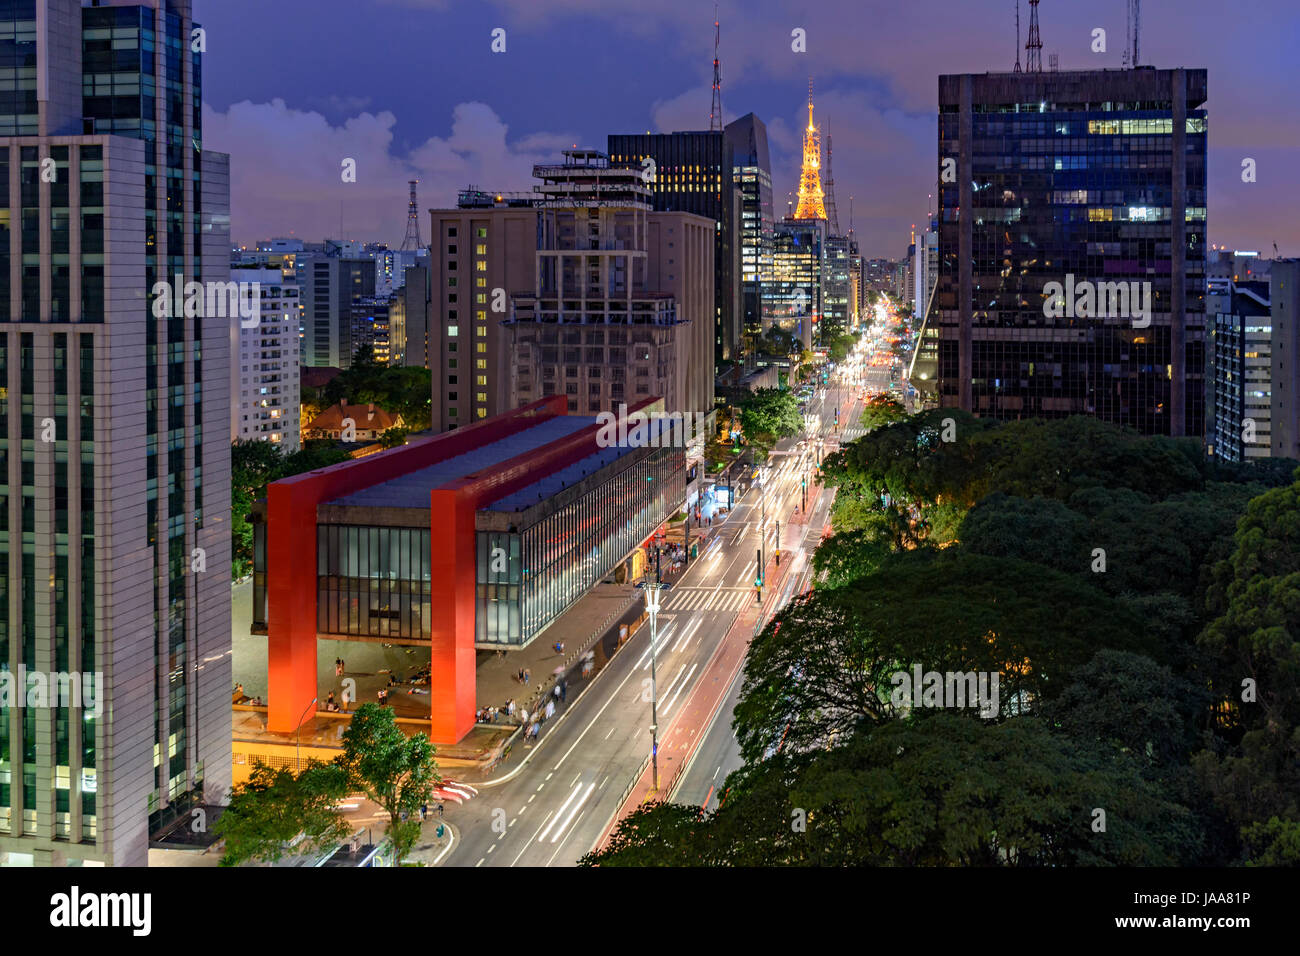 Night view of the famous Paulista Avenue, financial center of the city and one of the main places of São Paulo, - Stock Image